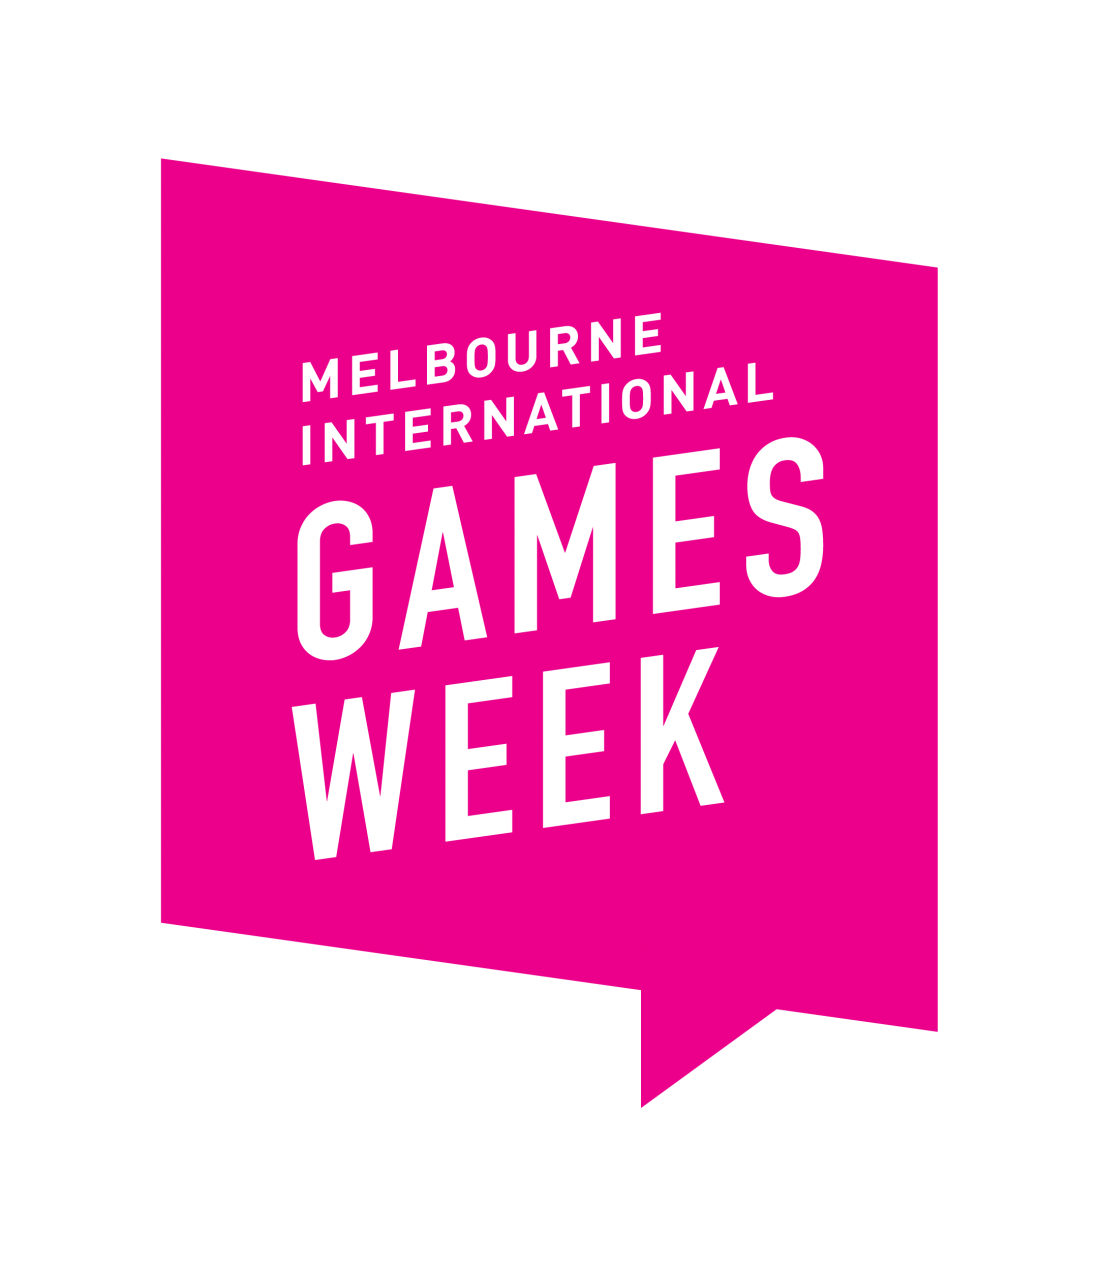 Melbourne Games Week